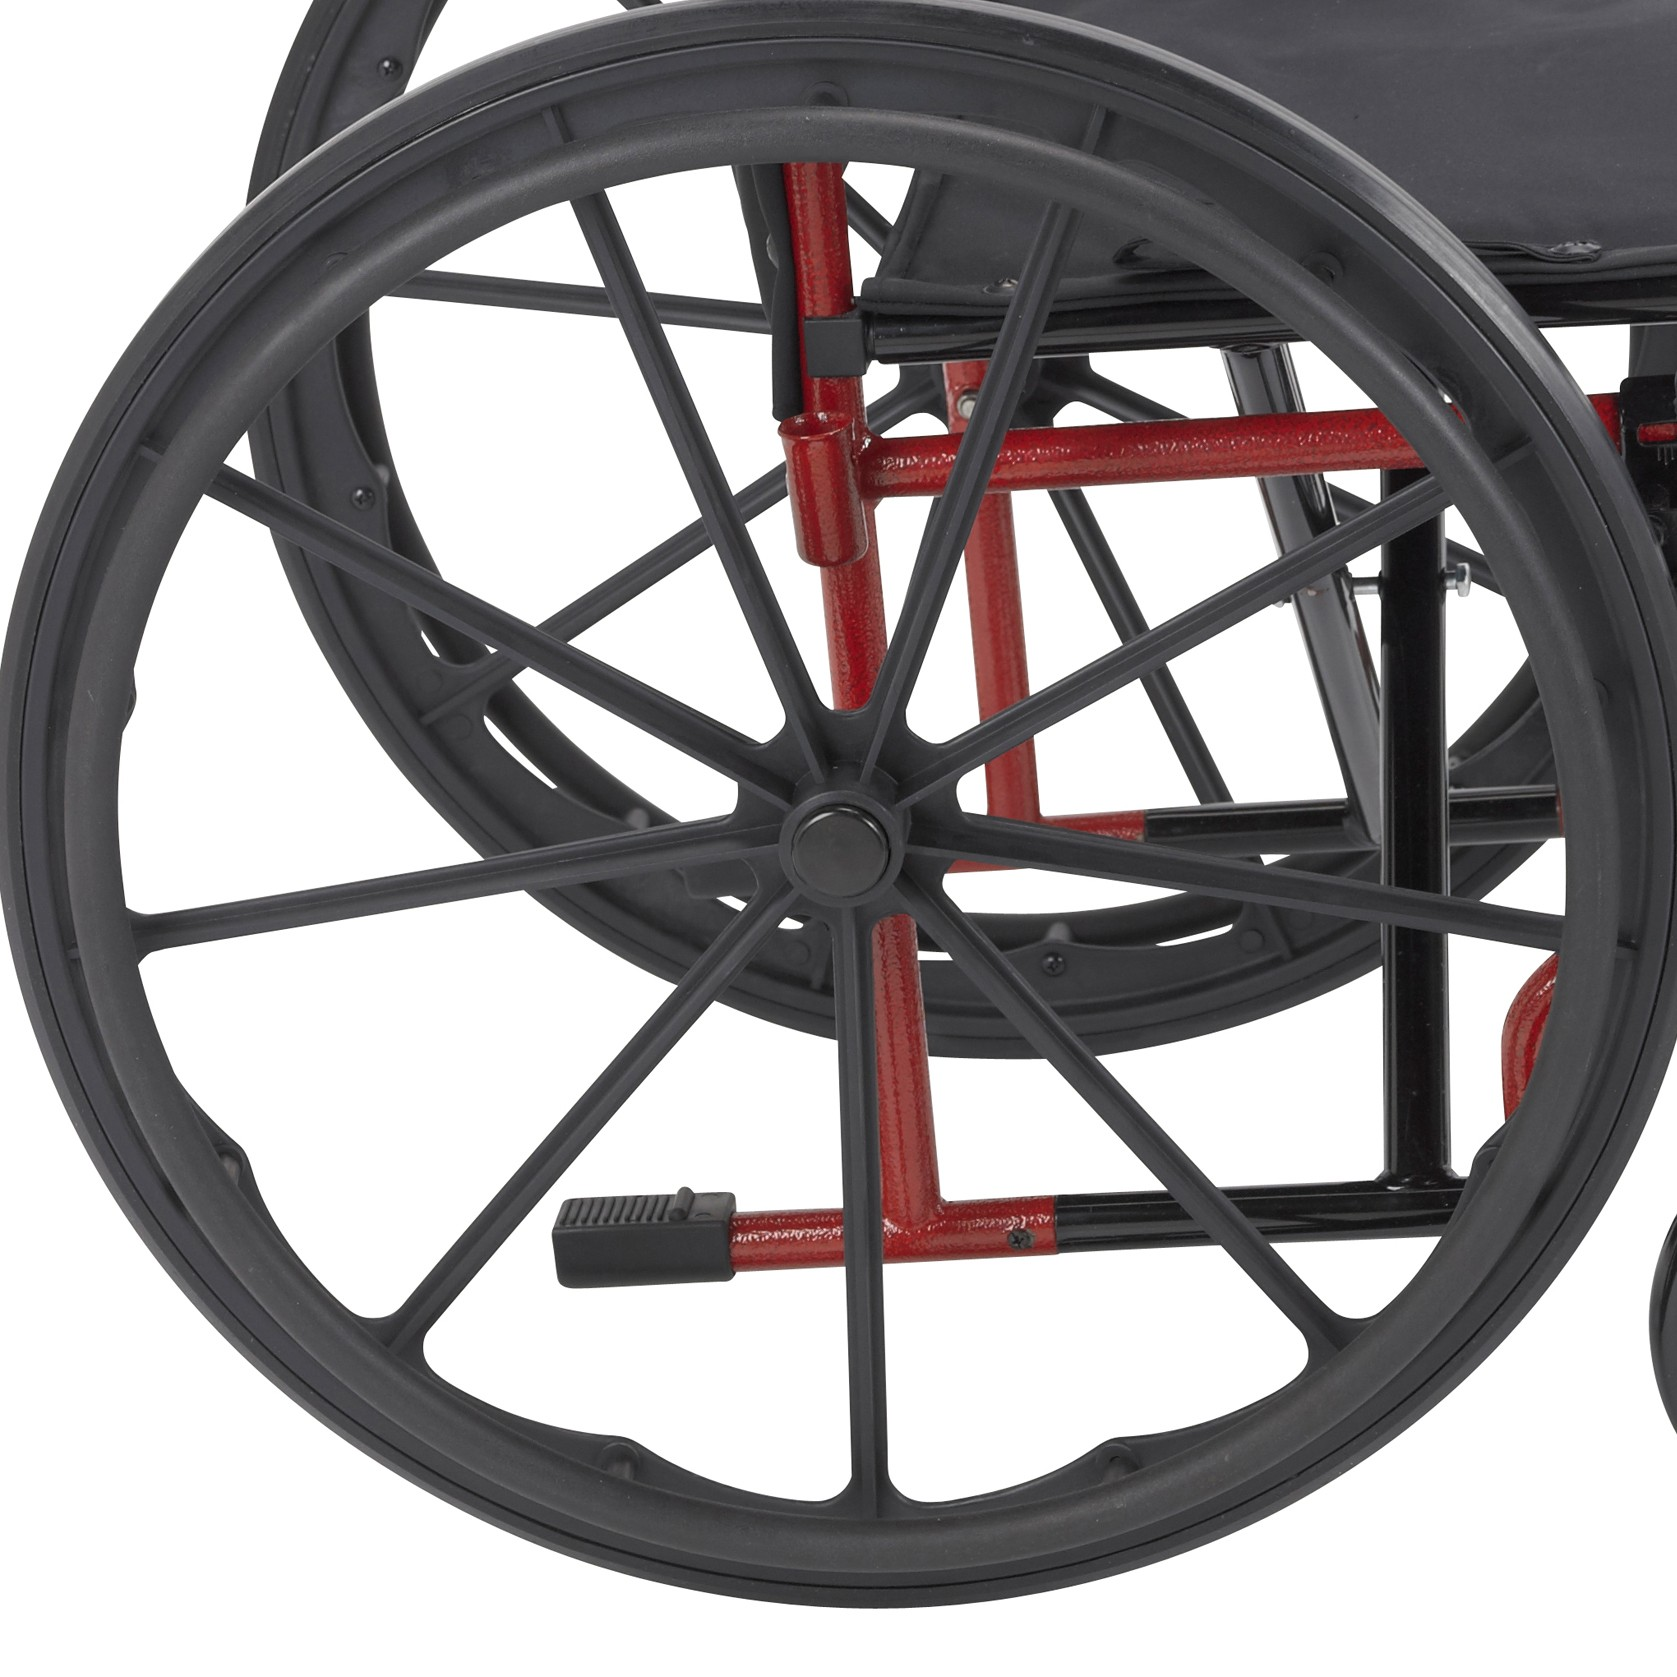 drive shower chair weight limit classroom tables and chairs medical rebel wheelchair single axle